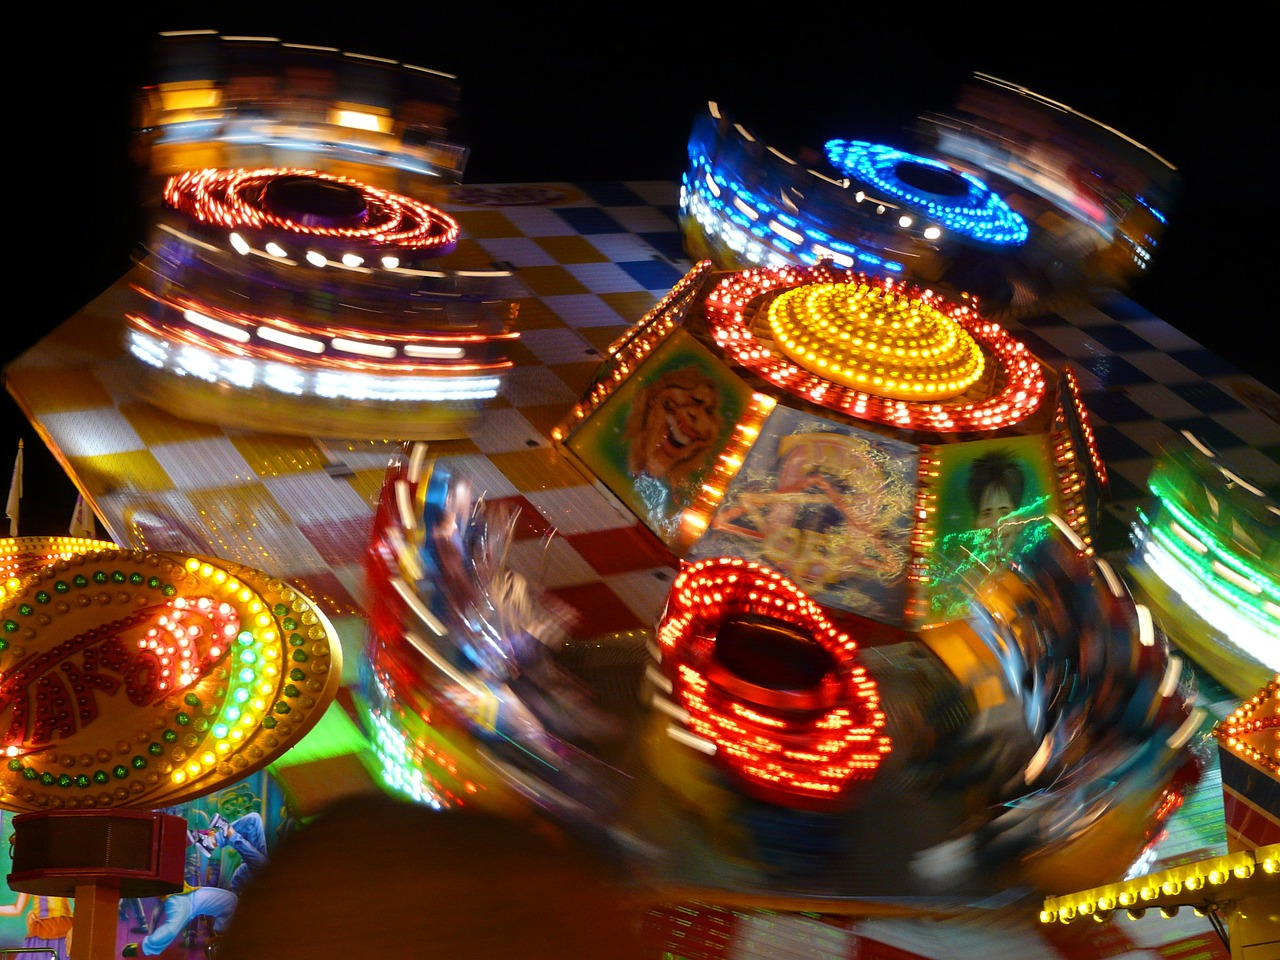 year market,fair,theme park,ride,lighting,fun,lights,energy,electricity,long exposure,movement,free pictures, free photos, free images, royalty free, free illustrations, public domain